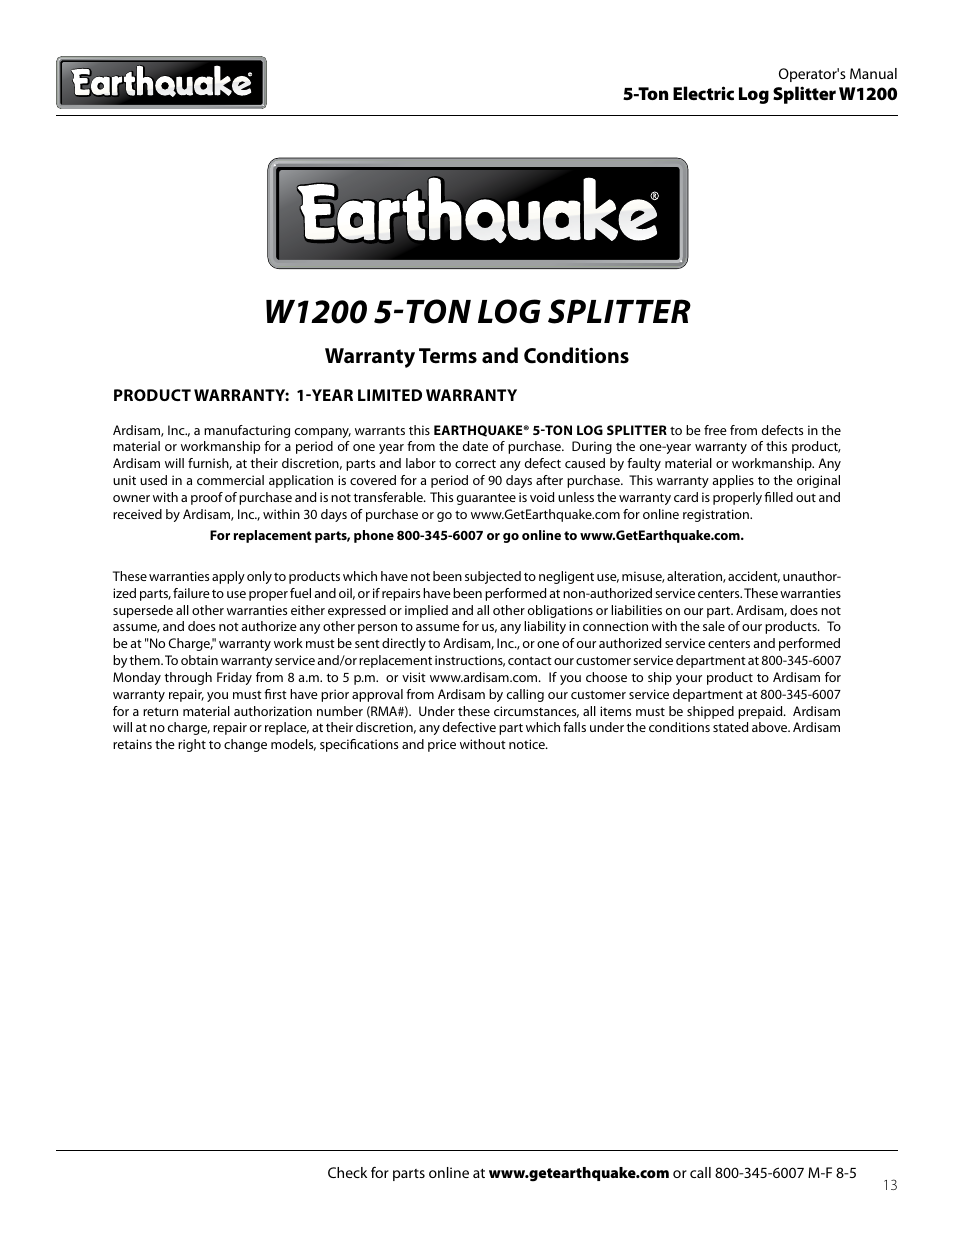 Earthquake groundbreaking power equipment w1200 log splitter 5.